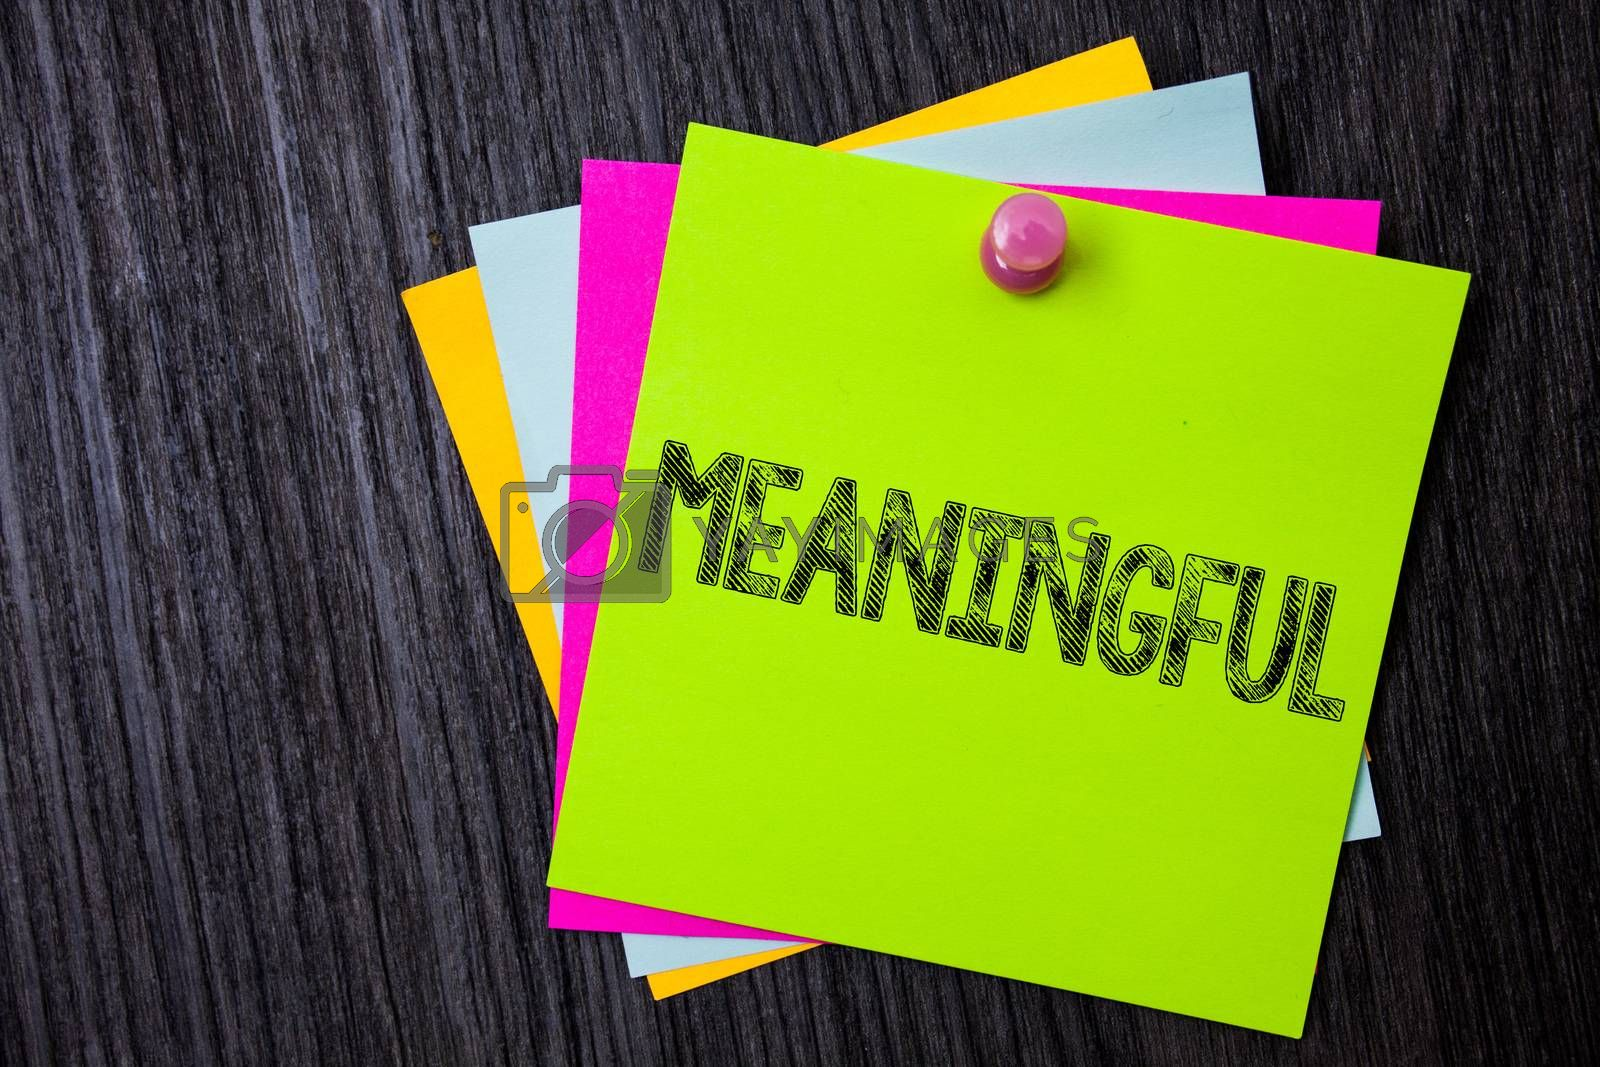 Word writing text Meaningful. Business concept for Having meaning Significant Relevant Important Purposeful Multiple sticky cards pinned coclourfull dark lining background board